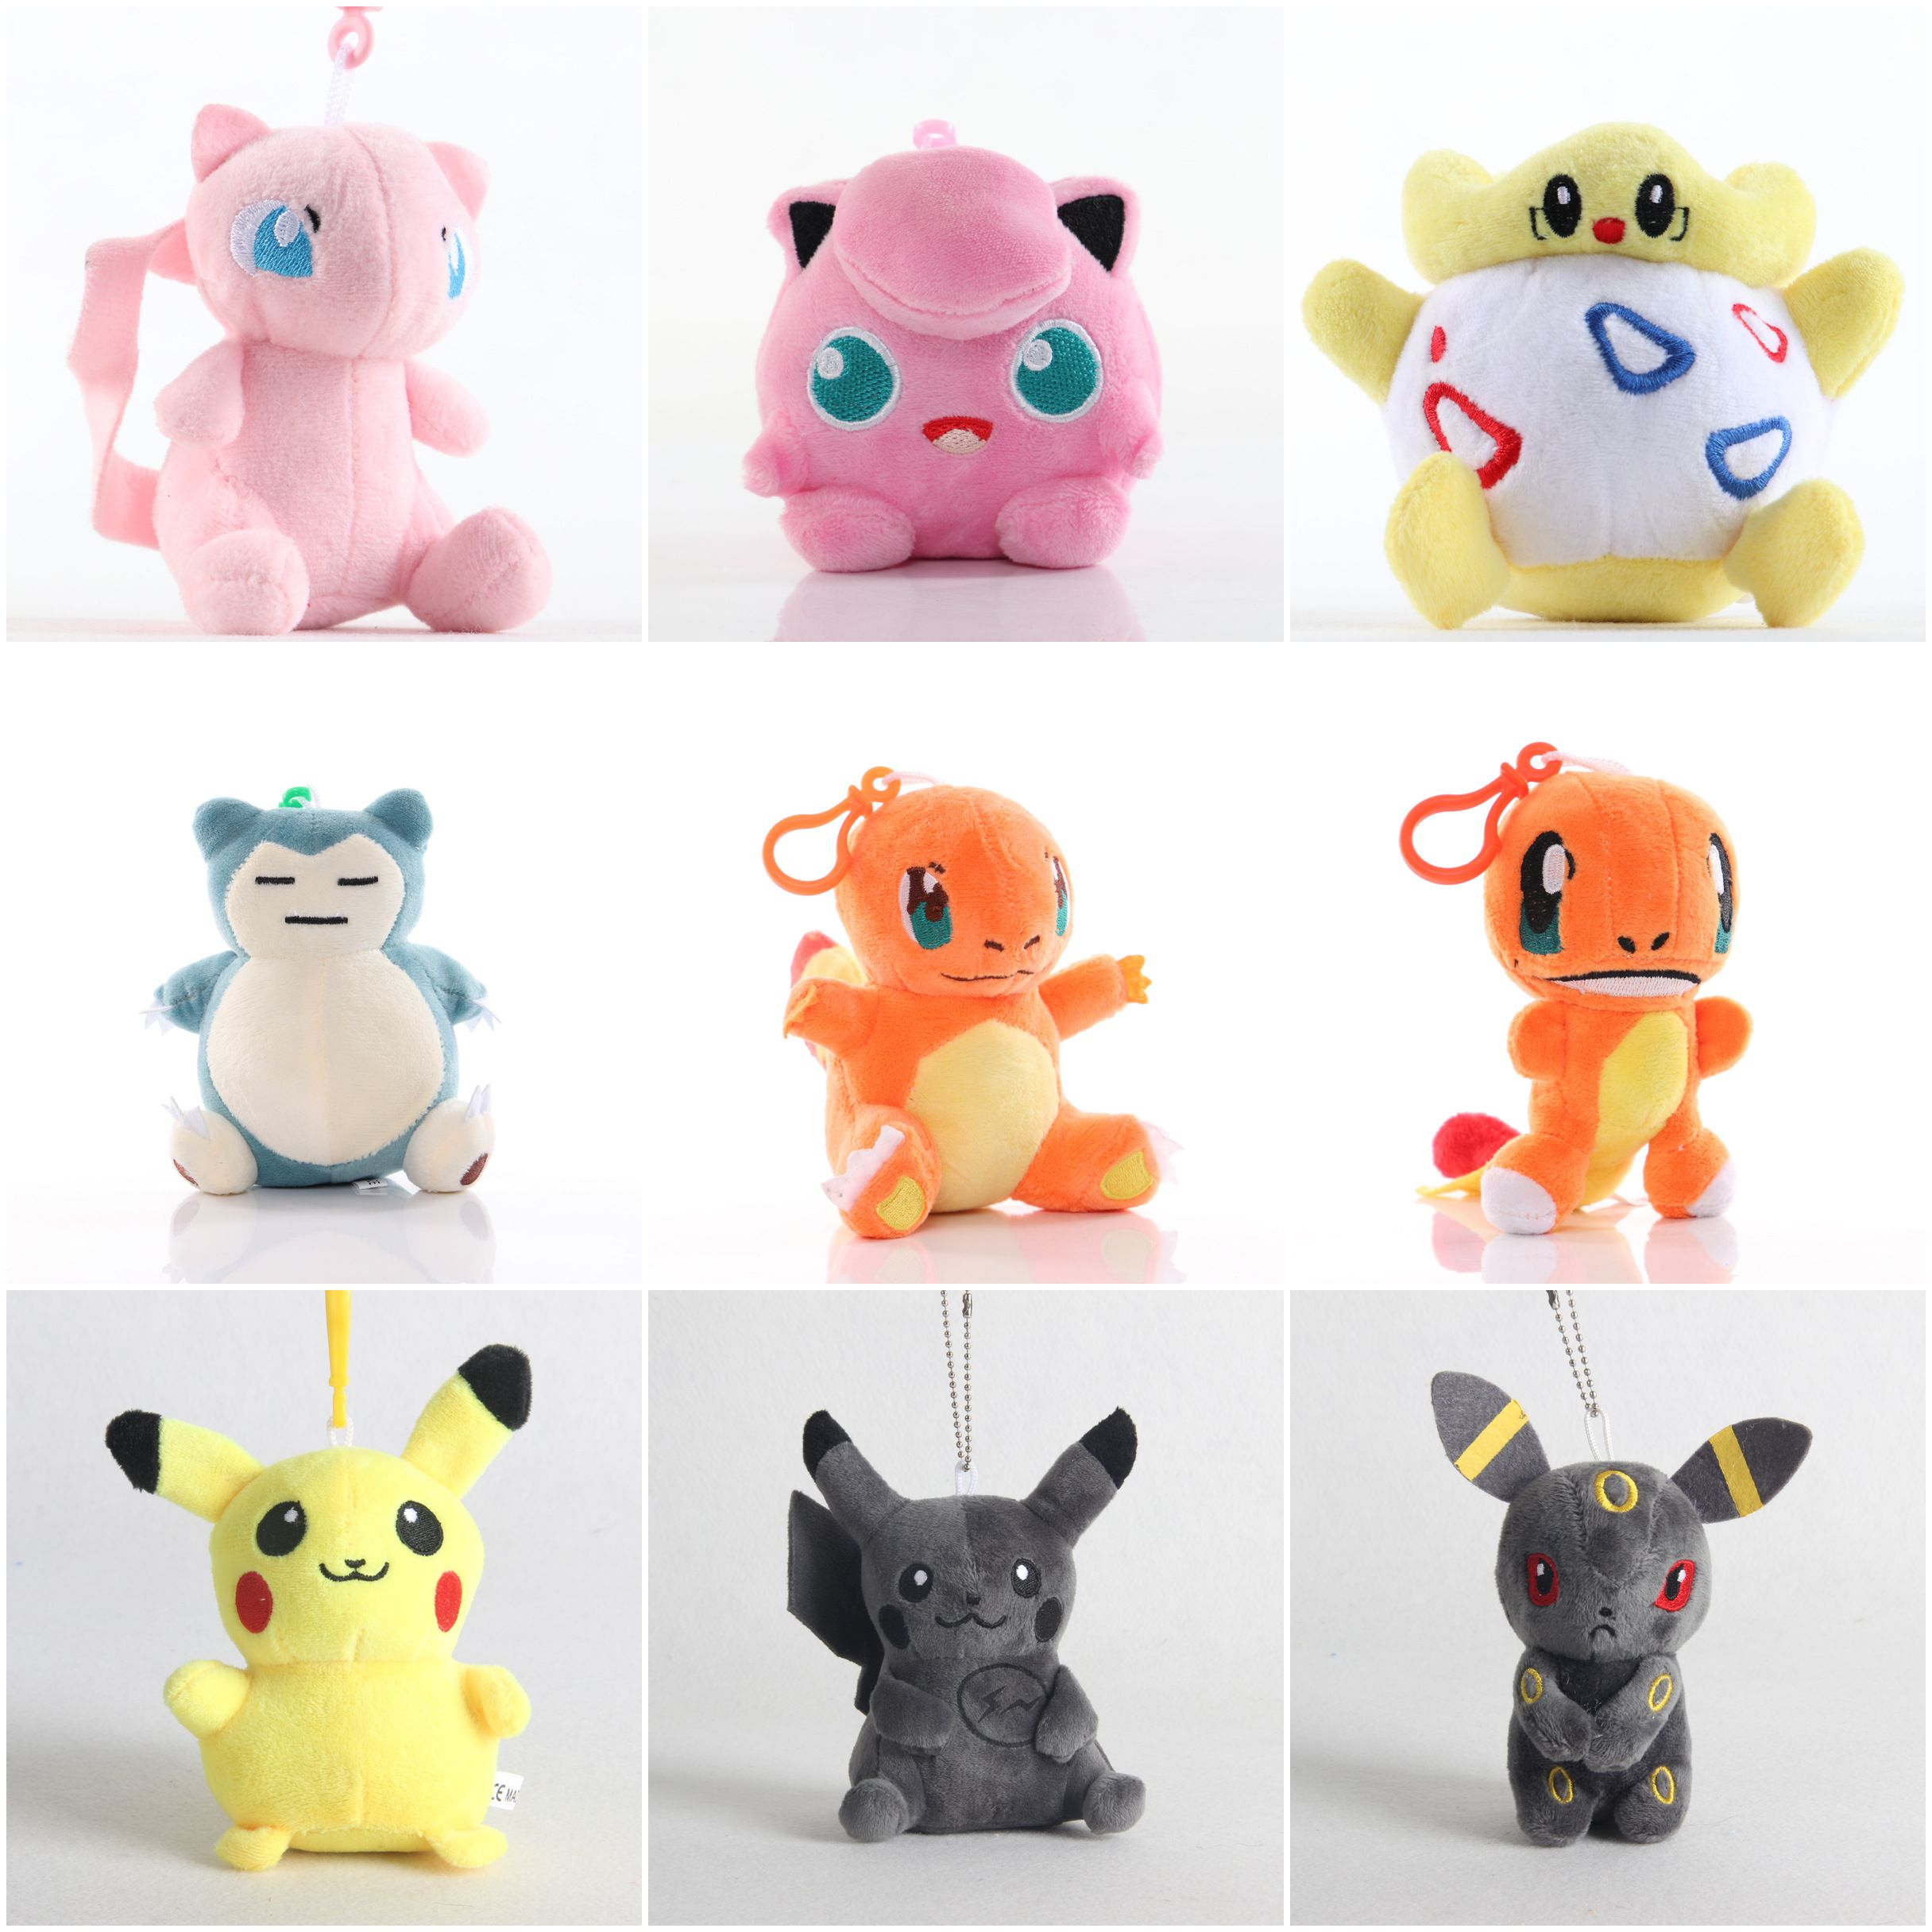 10cm-jigglypuff-charmander-bulbasaur-squirtle-eevee-font-b-pokemoned-b-font-plush-toy-for-children-activity-gift-small-soft-doll-anime